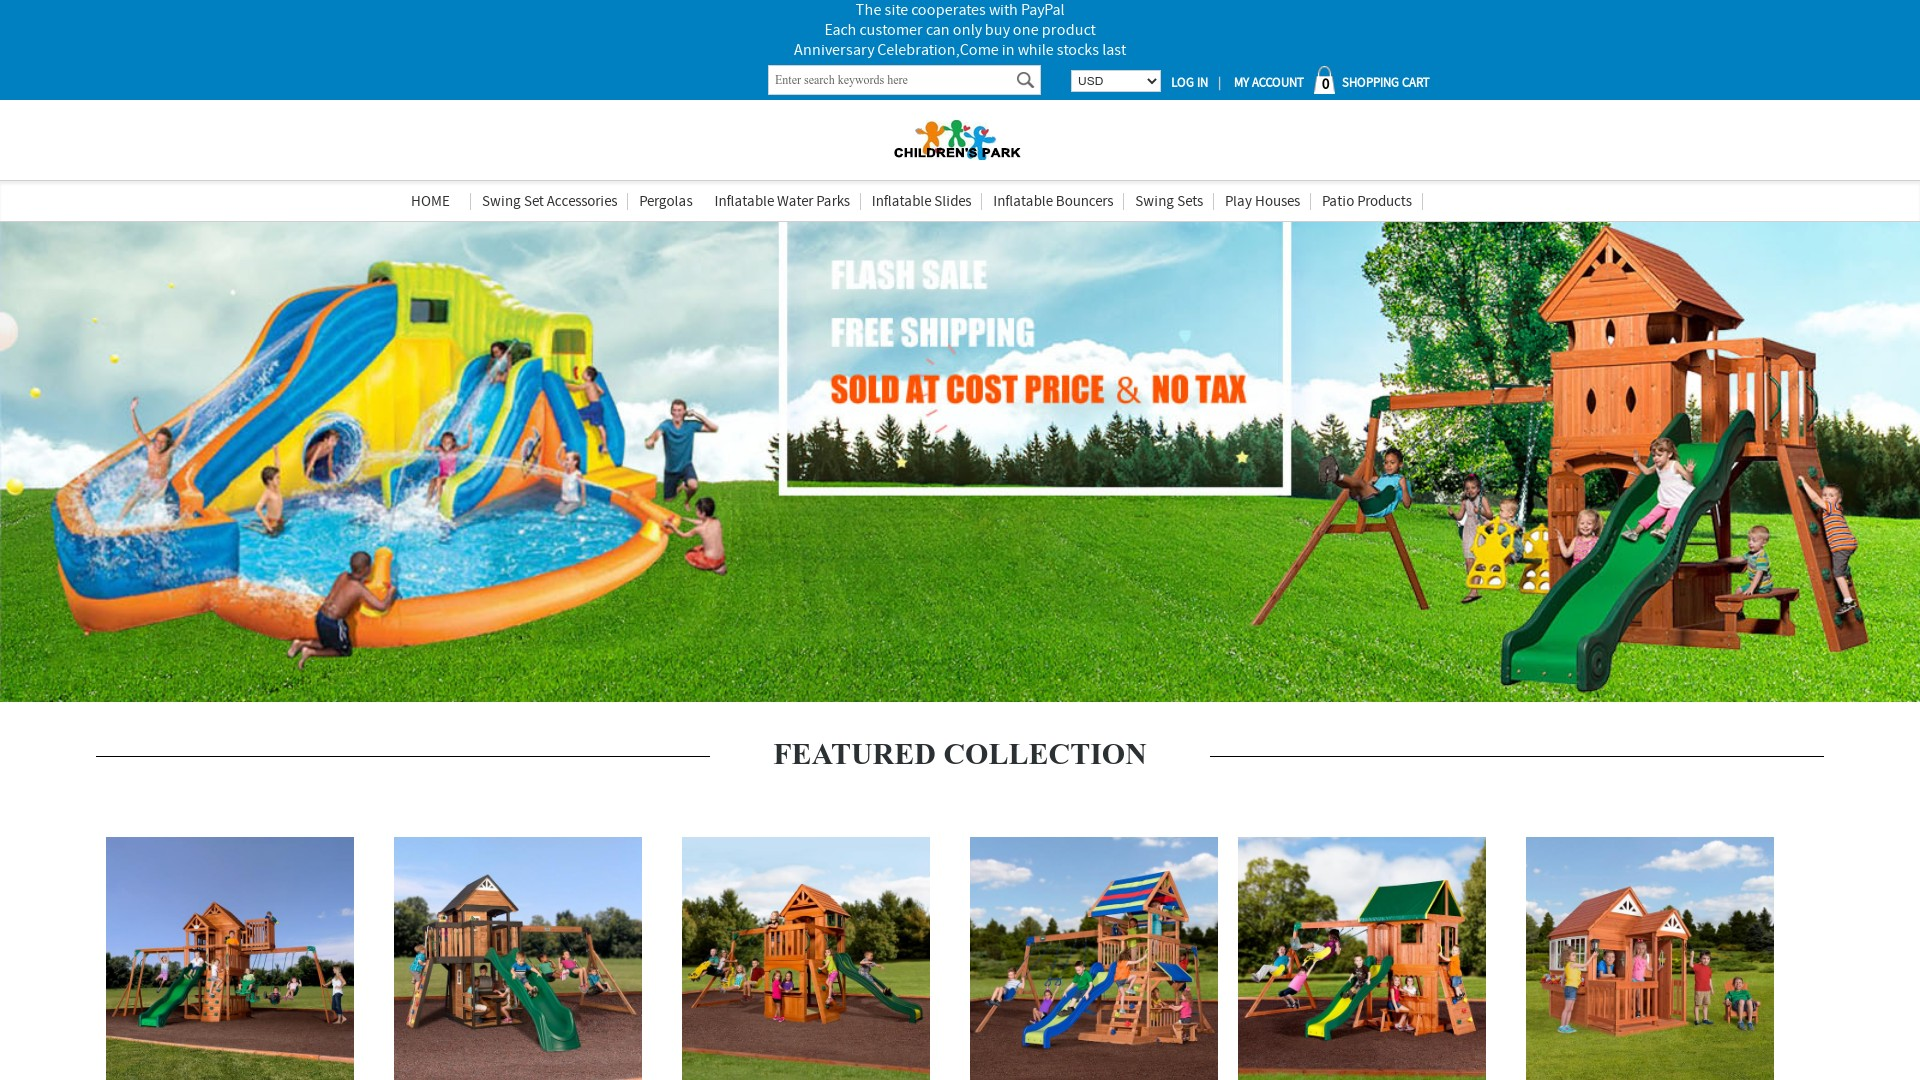 Is Reimton.com a Scam? See the Review of the Inflatable Water Parks Online Store